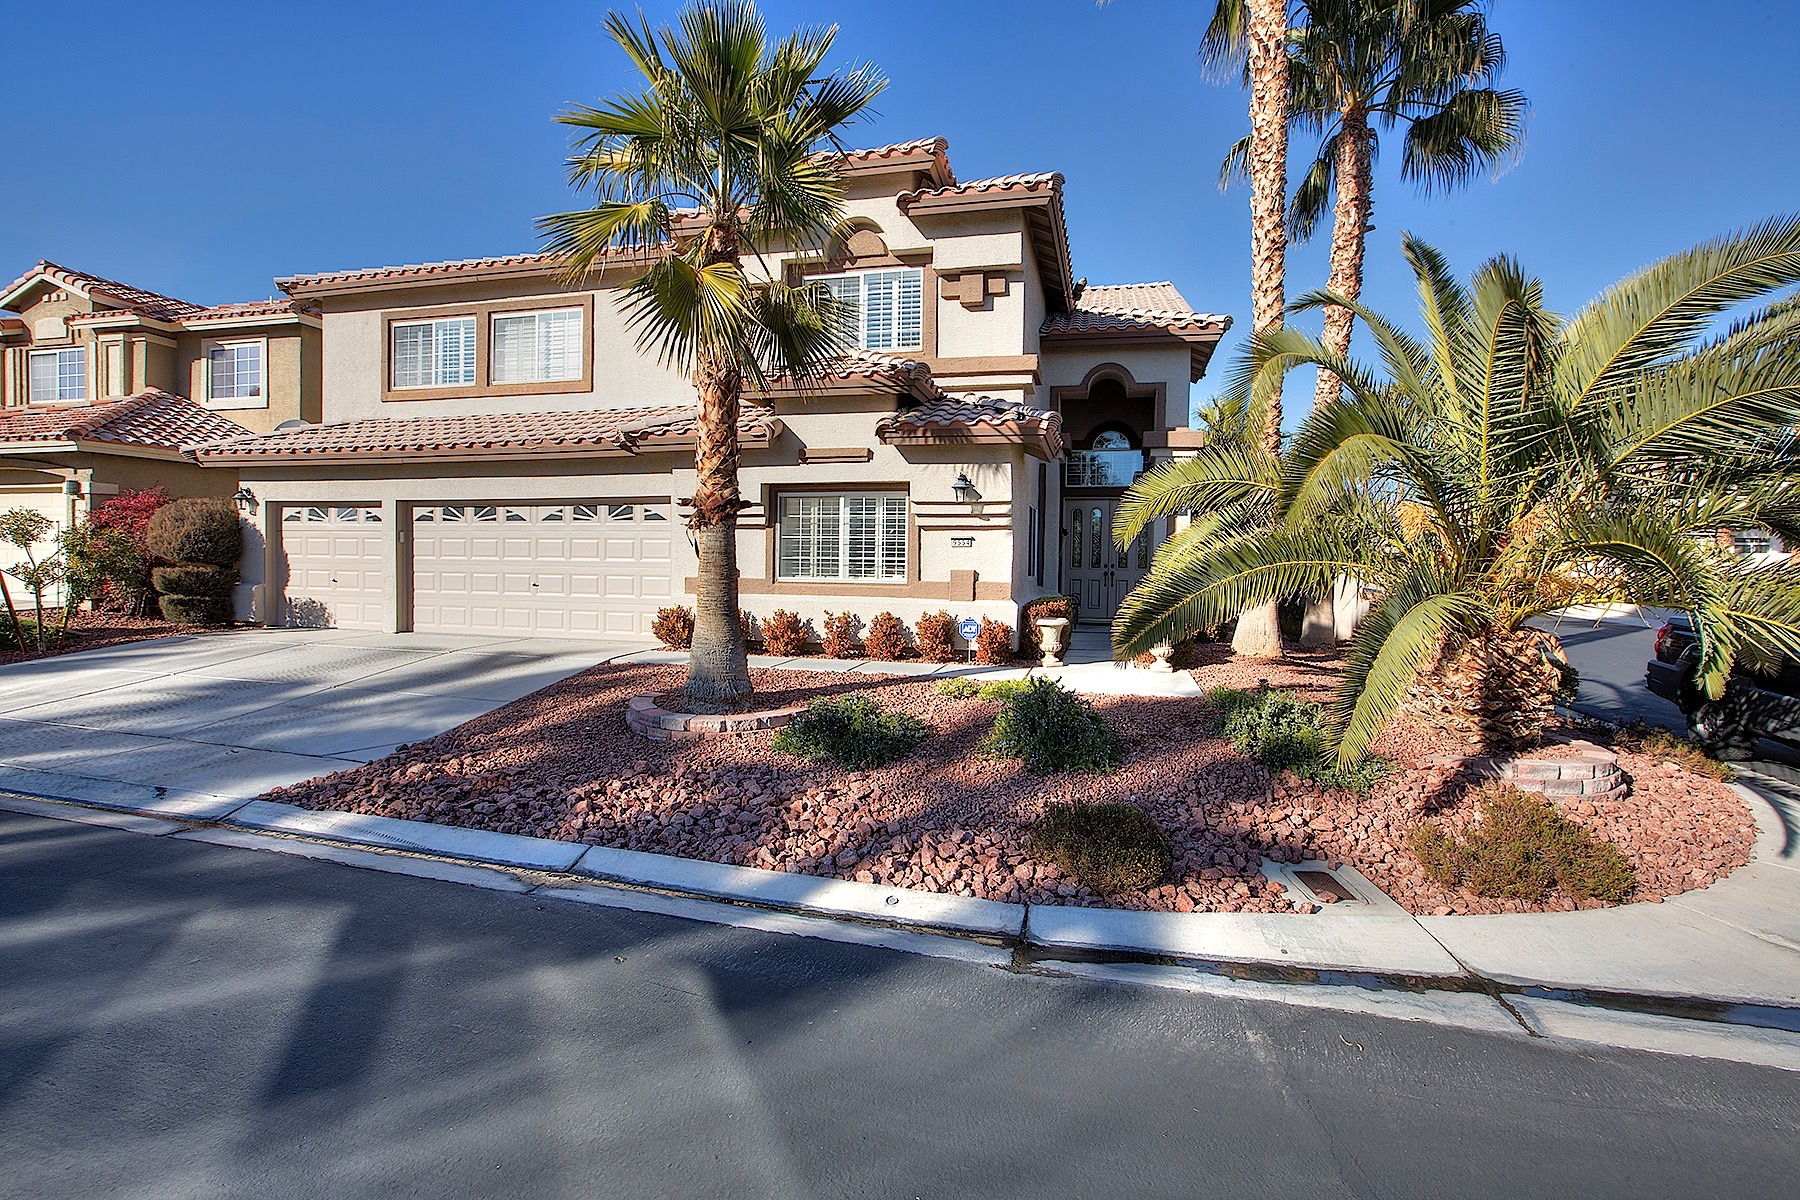 Single Family Home for Sale at 9554 Marina Valley Ave Las Vegas, Nevada 89147 United States